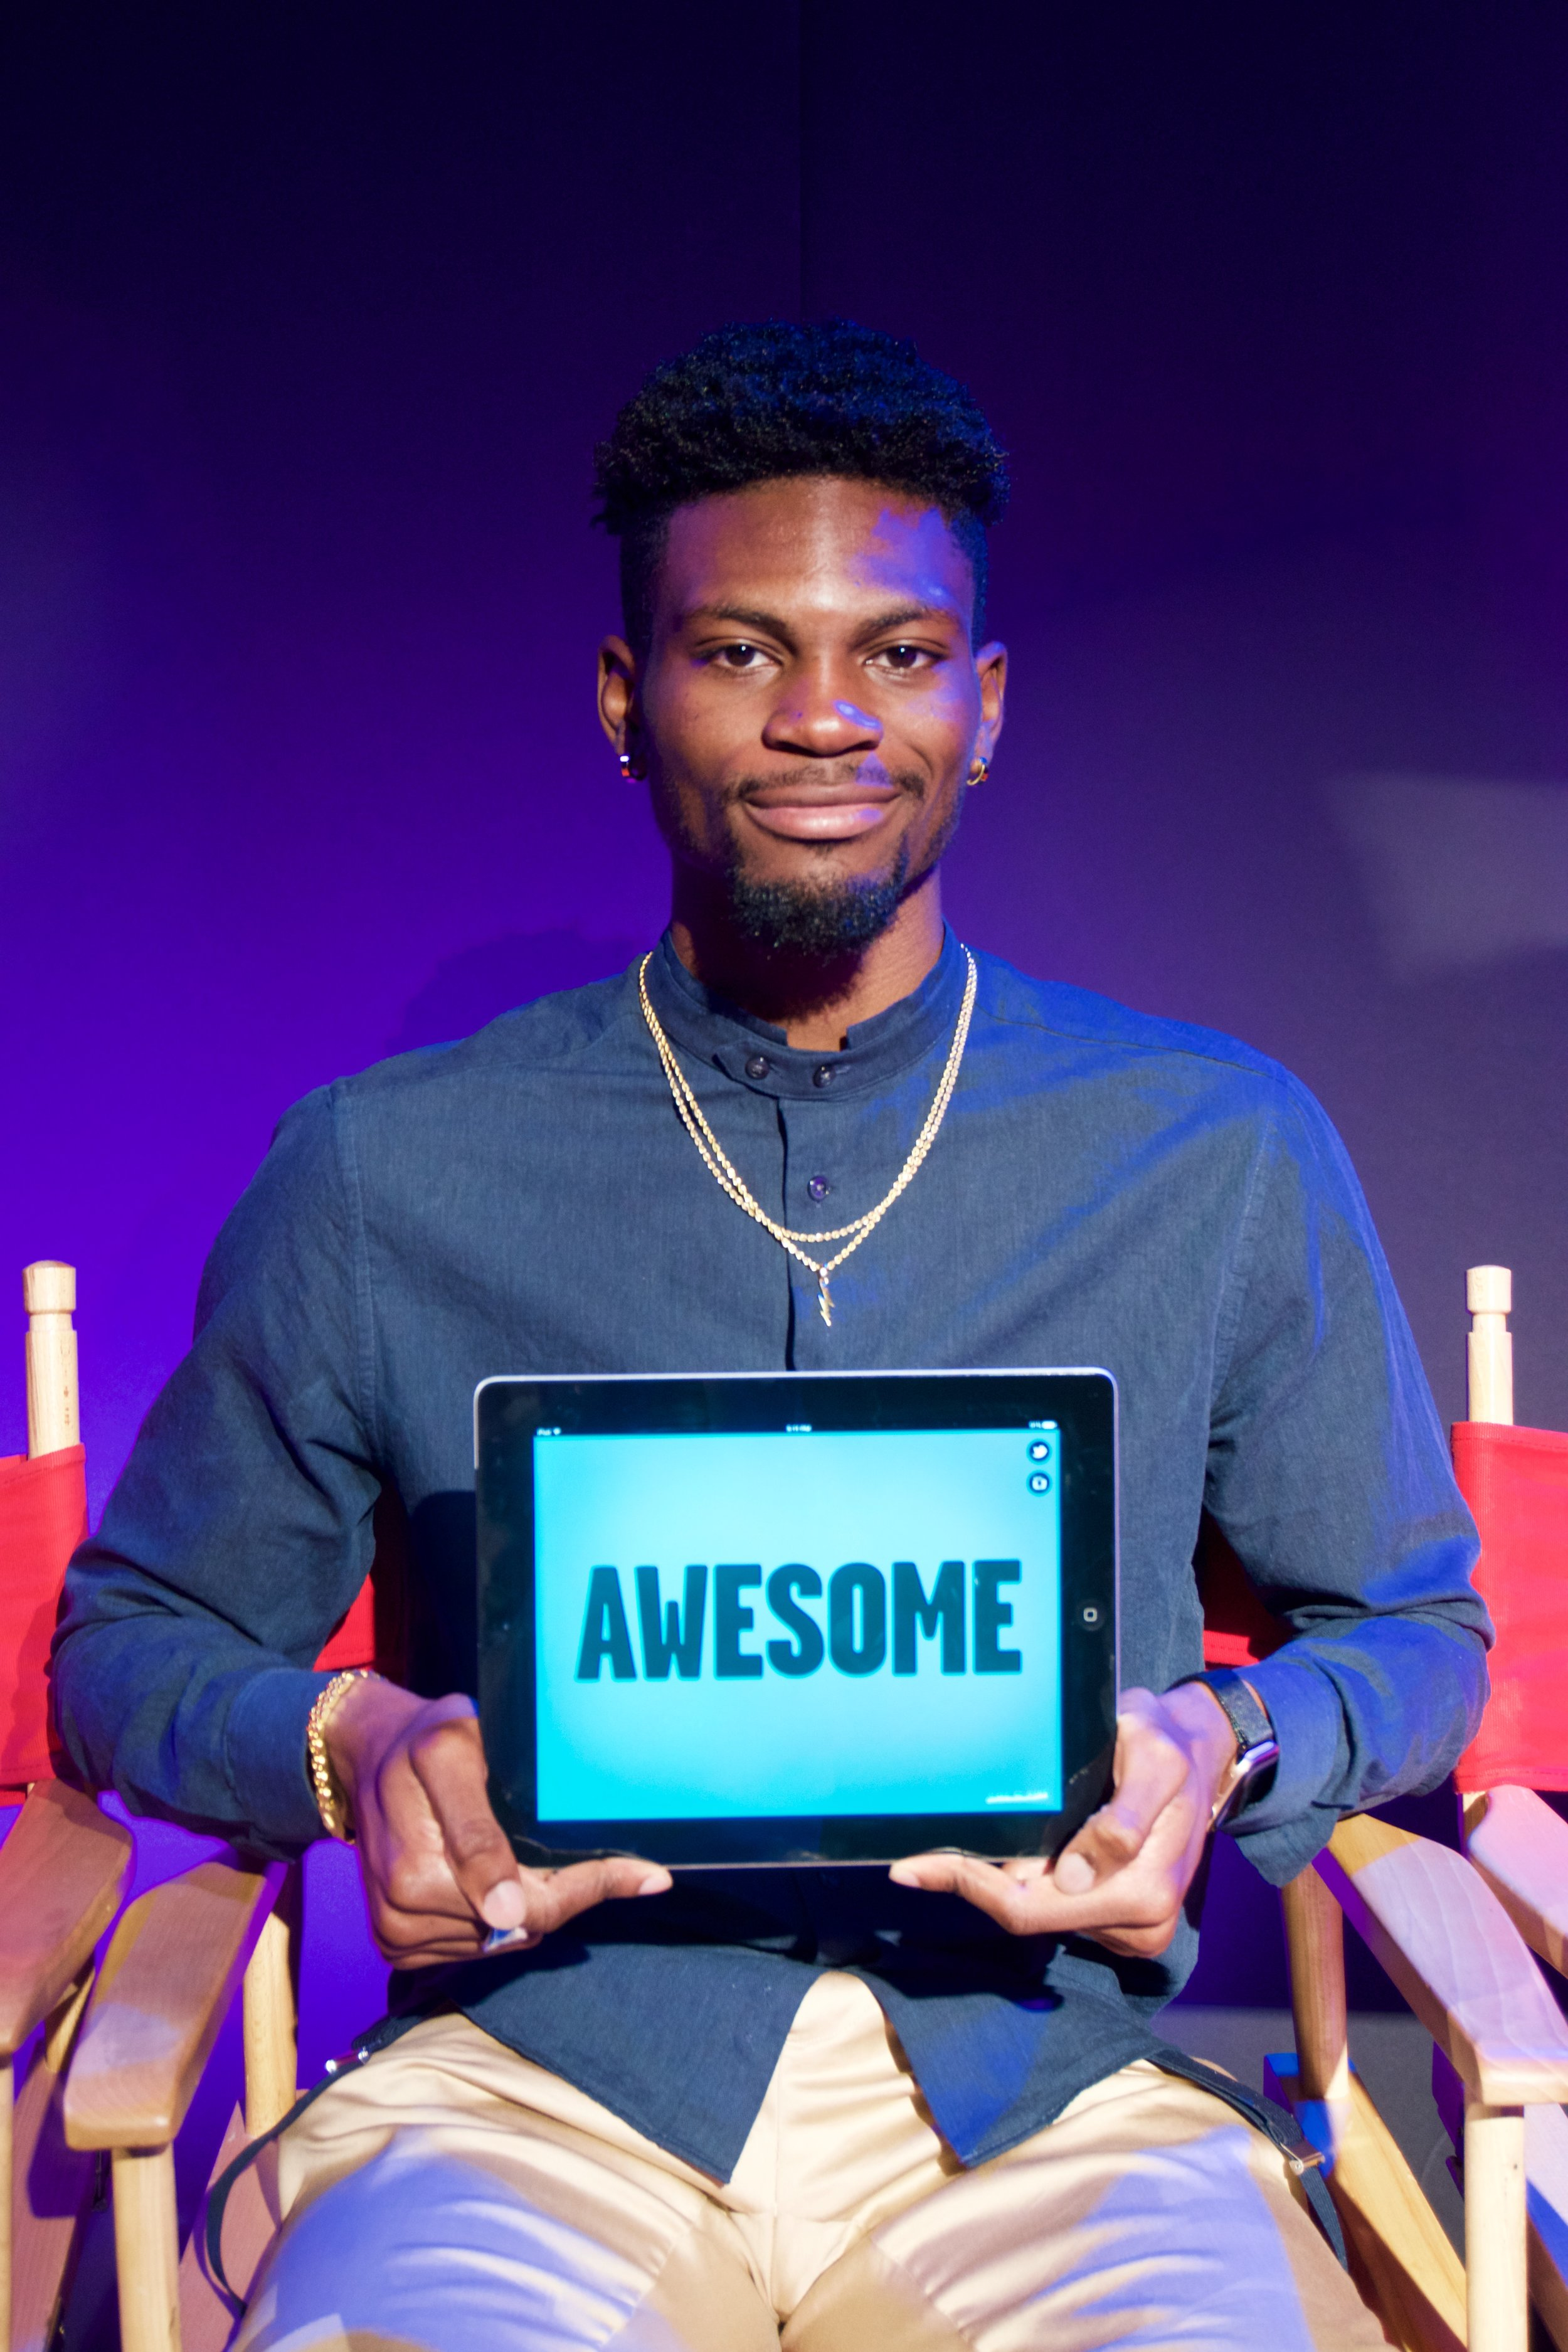 Bolade Ajomale - My name is Bolade Ajomale. I am an Olympic Bronze medallist and an NCAA Champion. I am a judge this year on